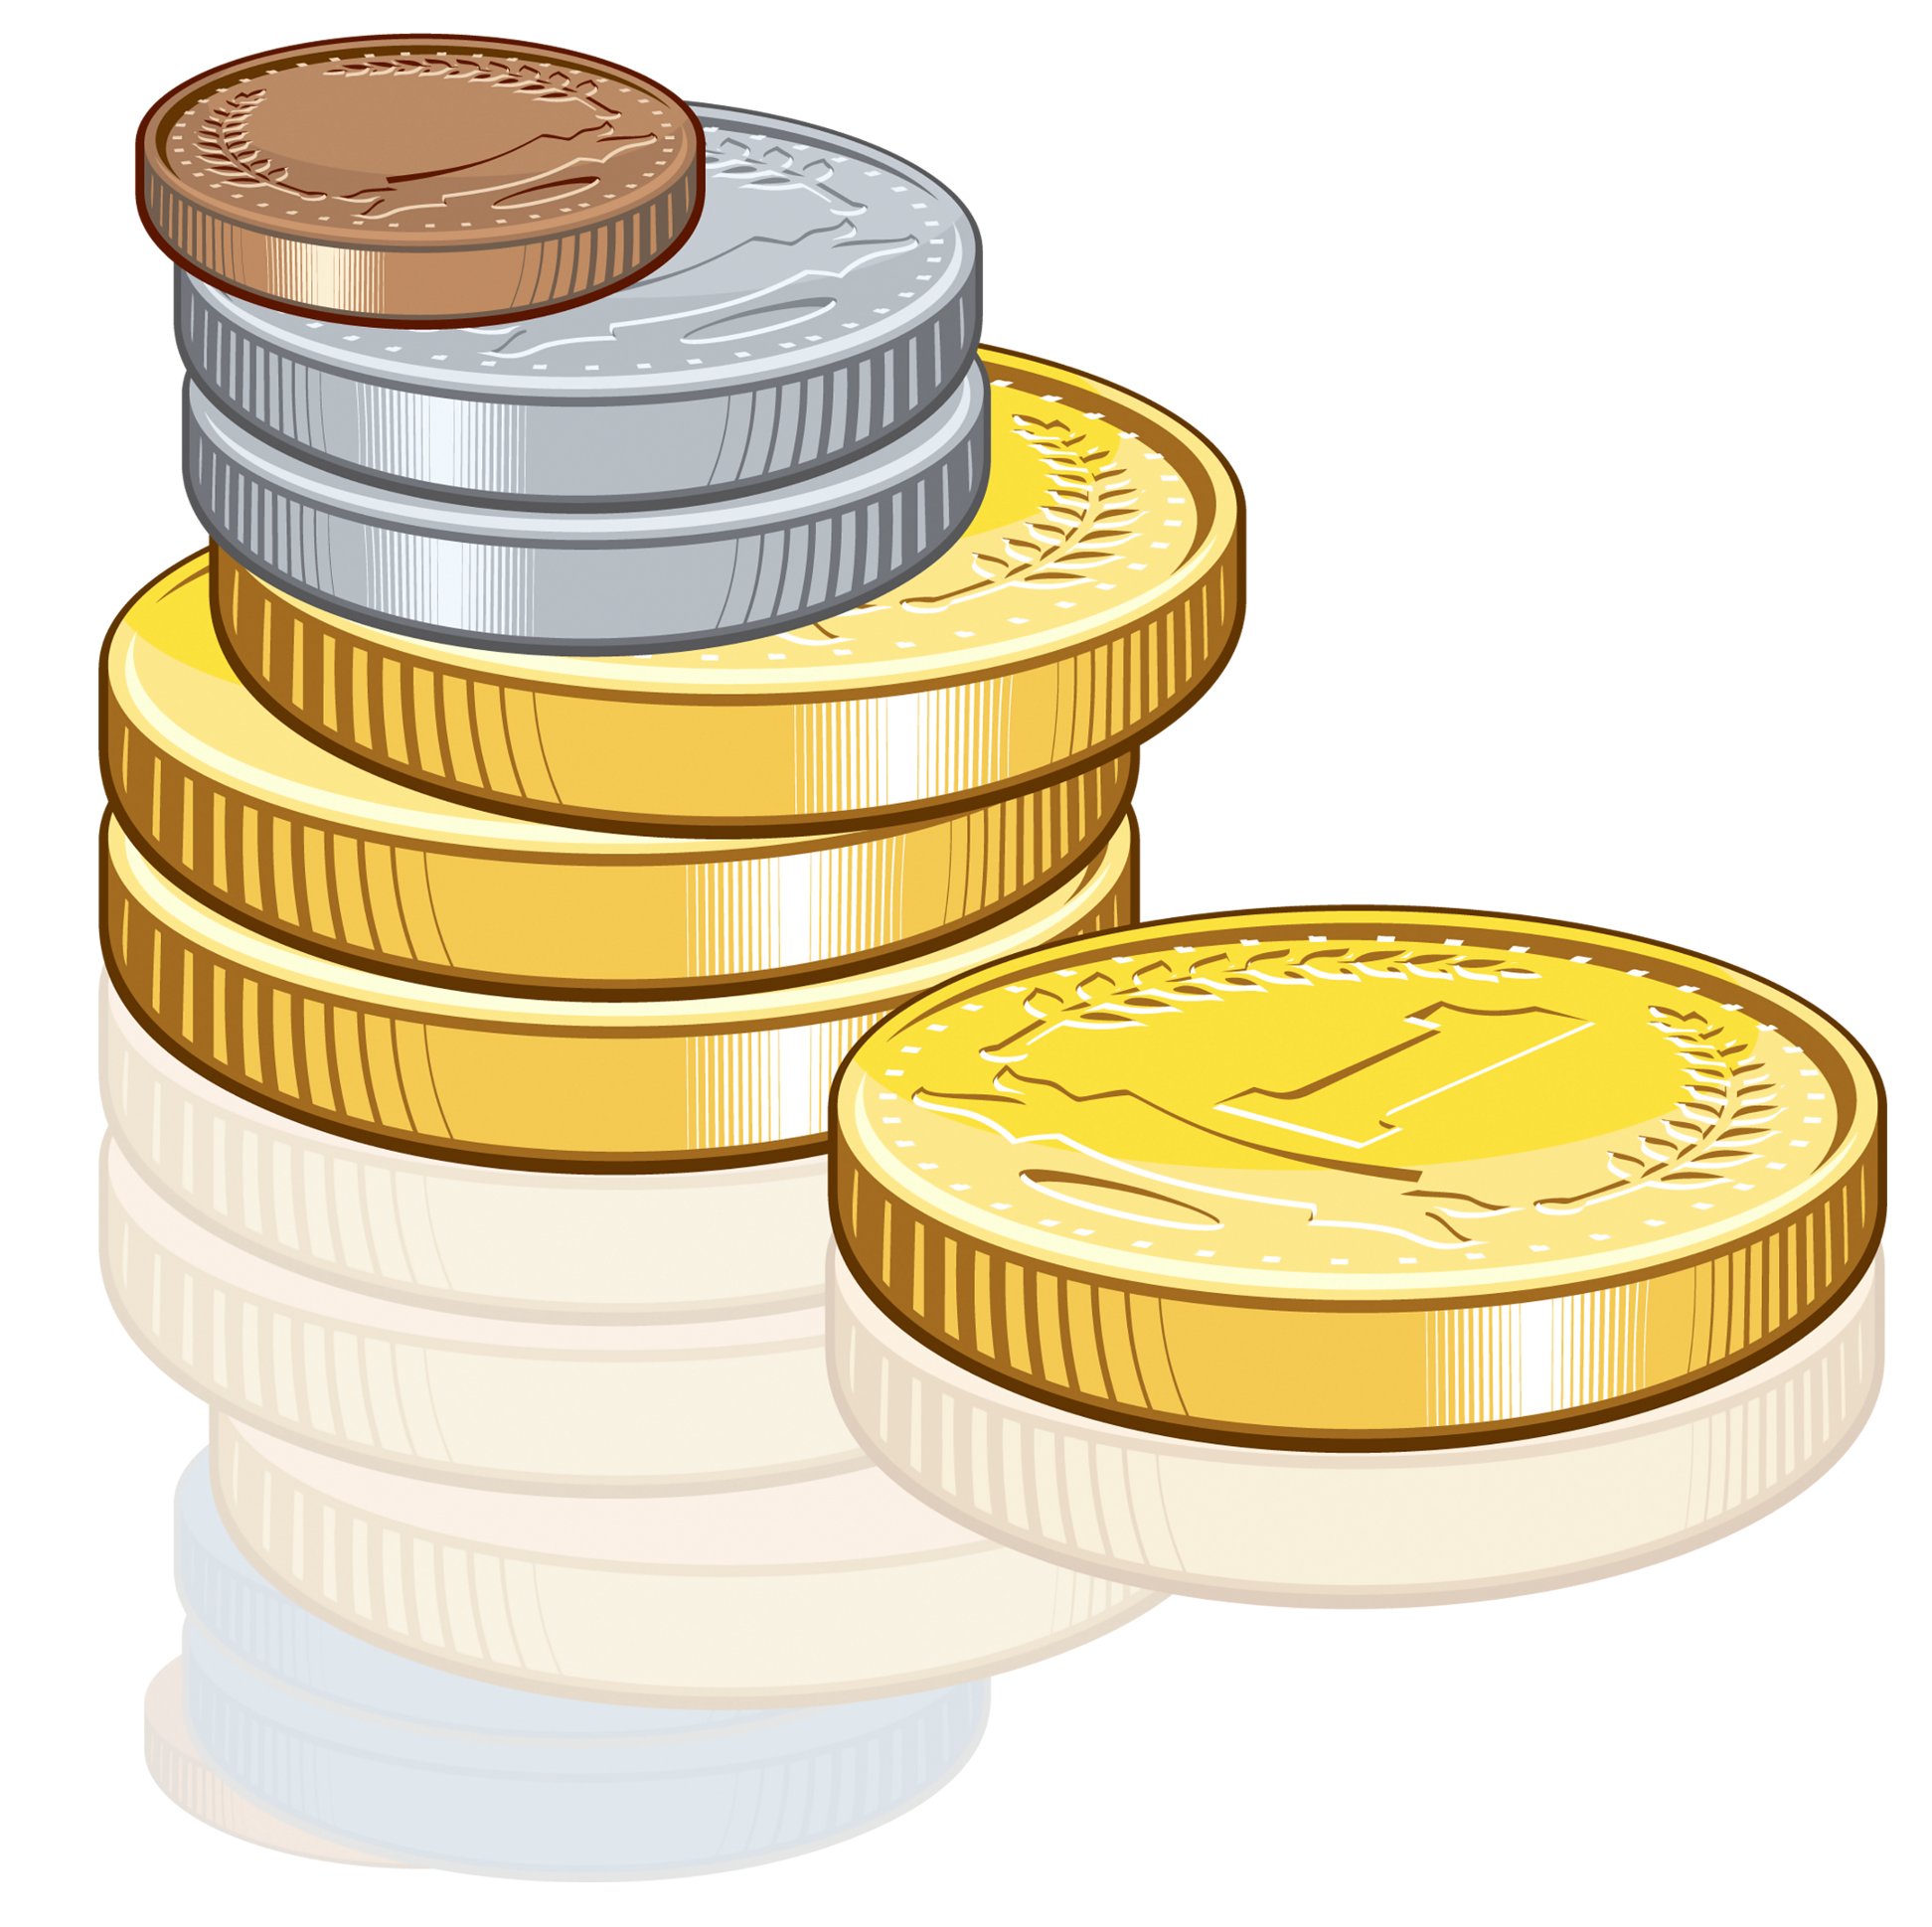 Free clipart money images clip art freeuse stock Coins PNG Clipart | Gallery Yopriceville - High-Quality Images and ... clip art freeuse stock